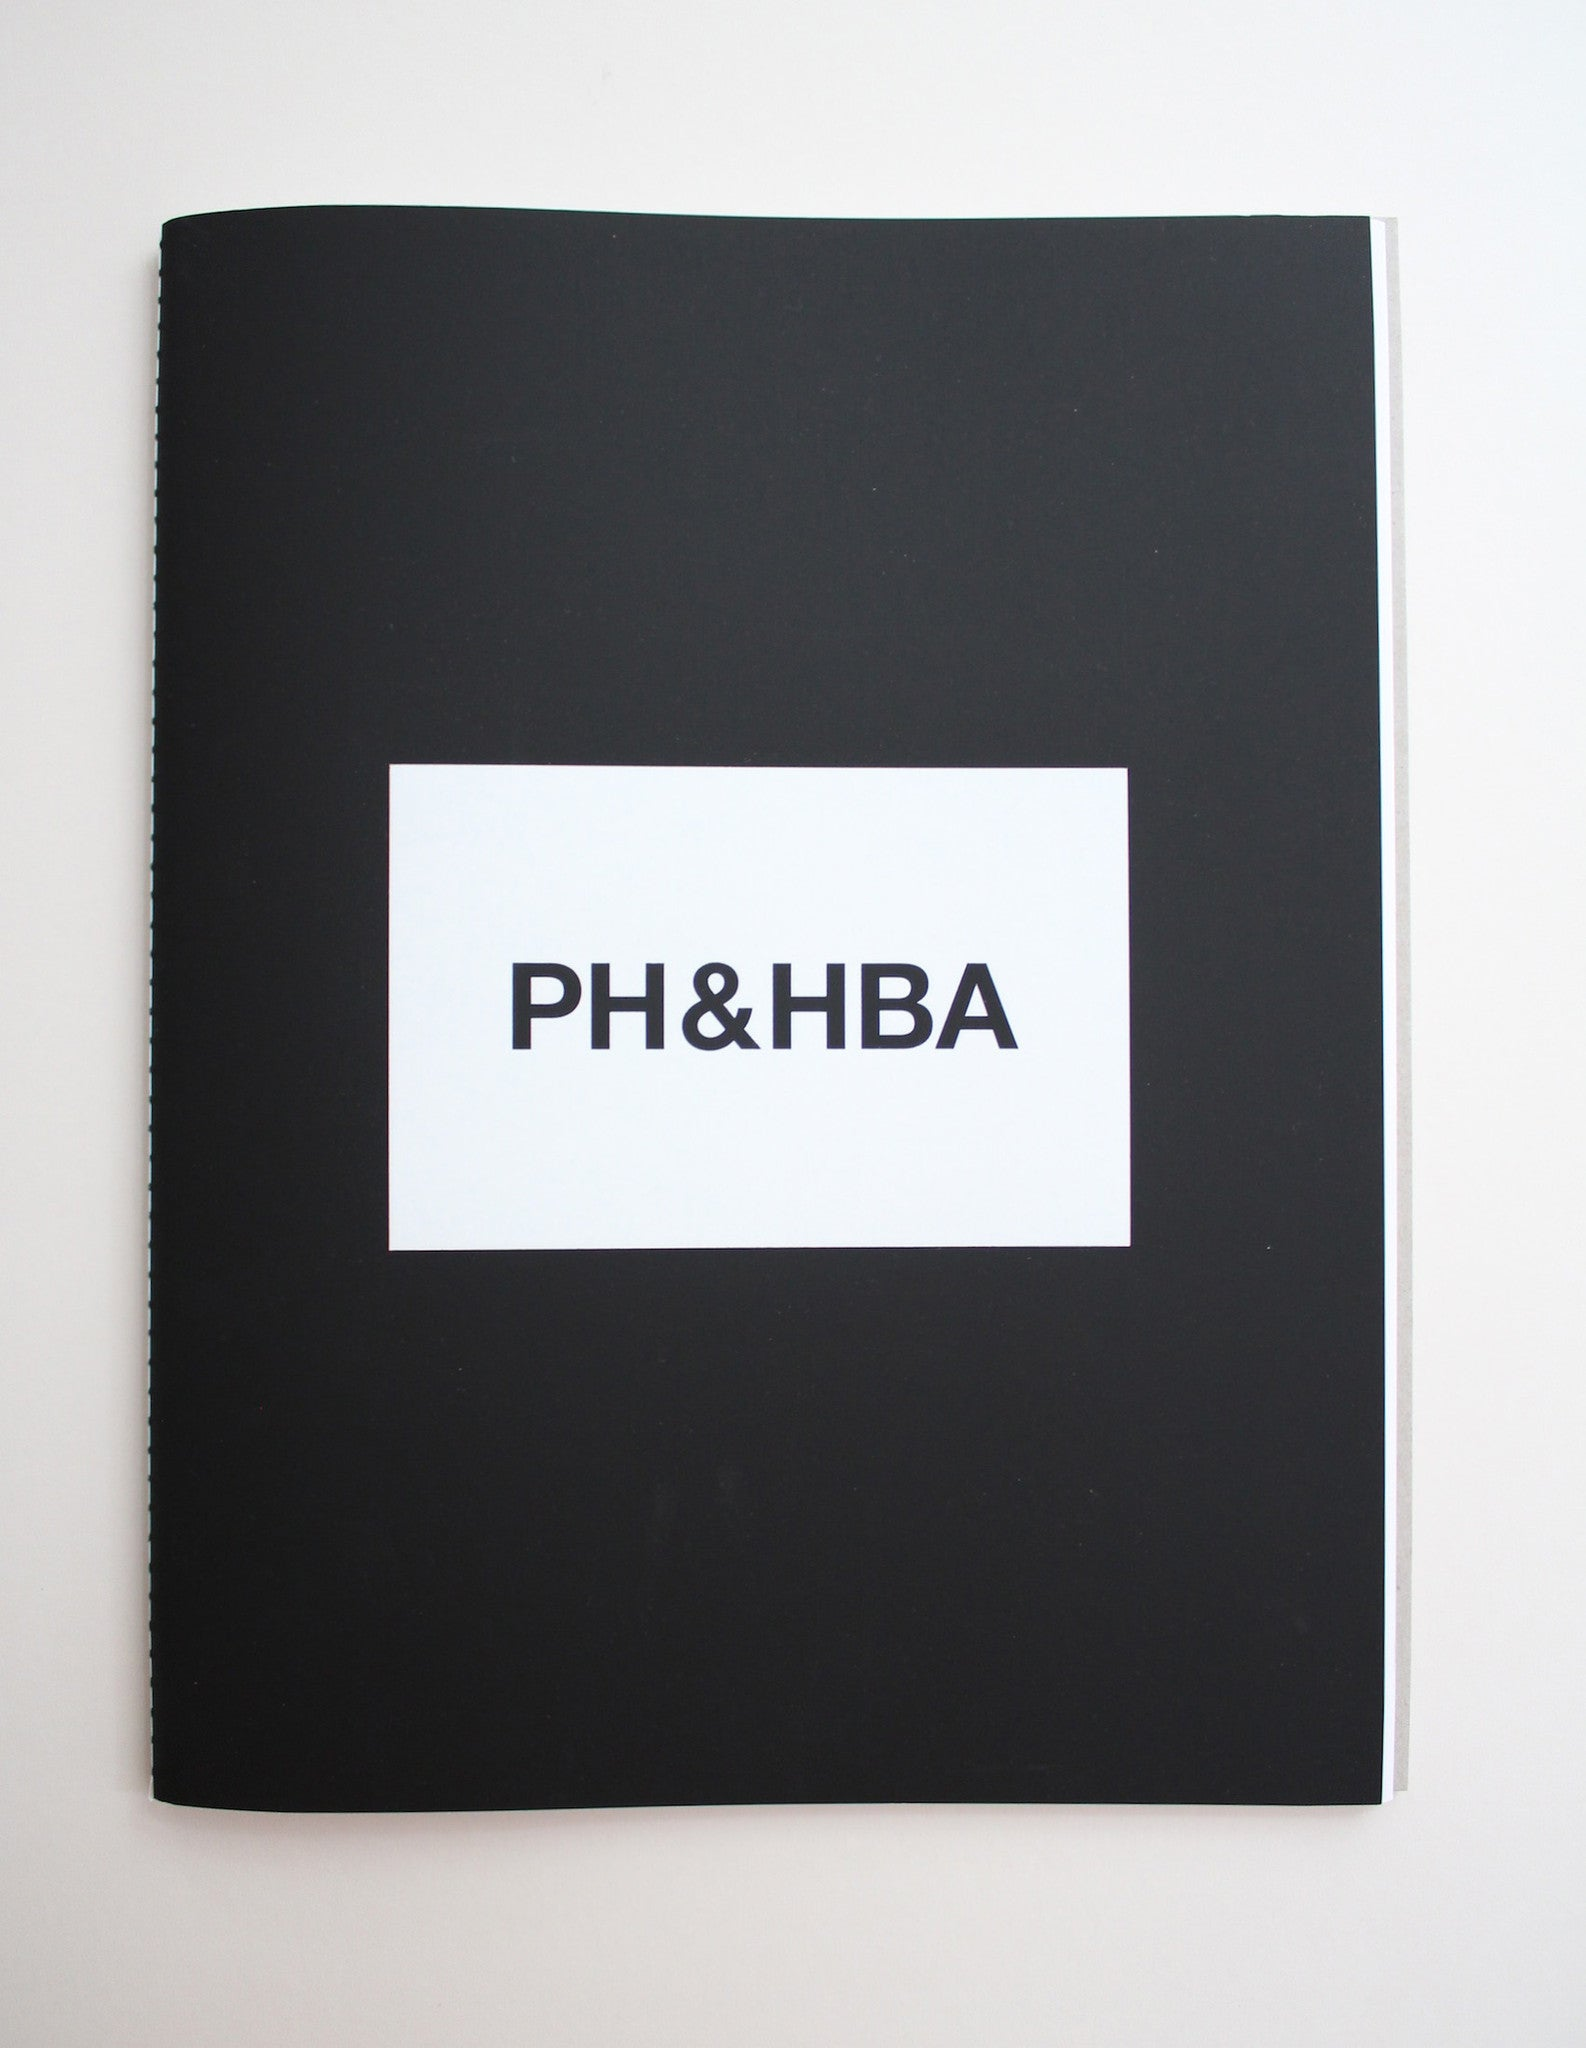 Pieter Hugo in collab. with Hood by Air, PB x HBA - Claire de Rouen Books